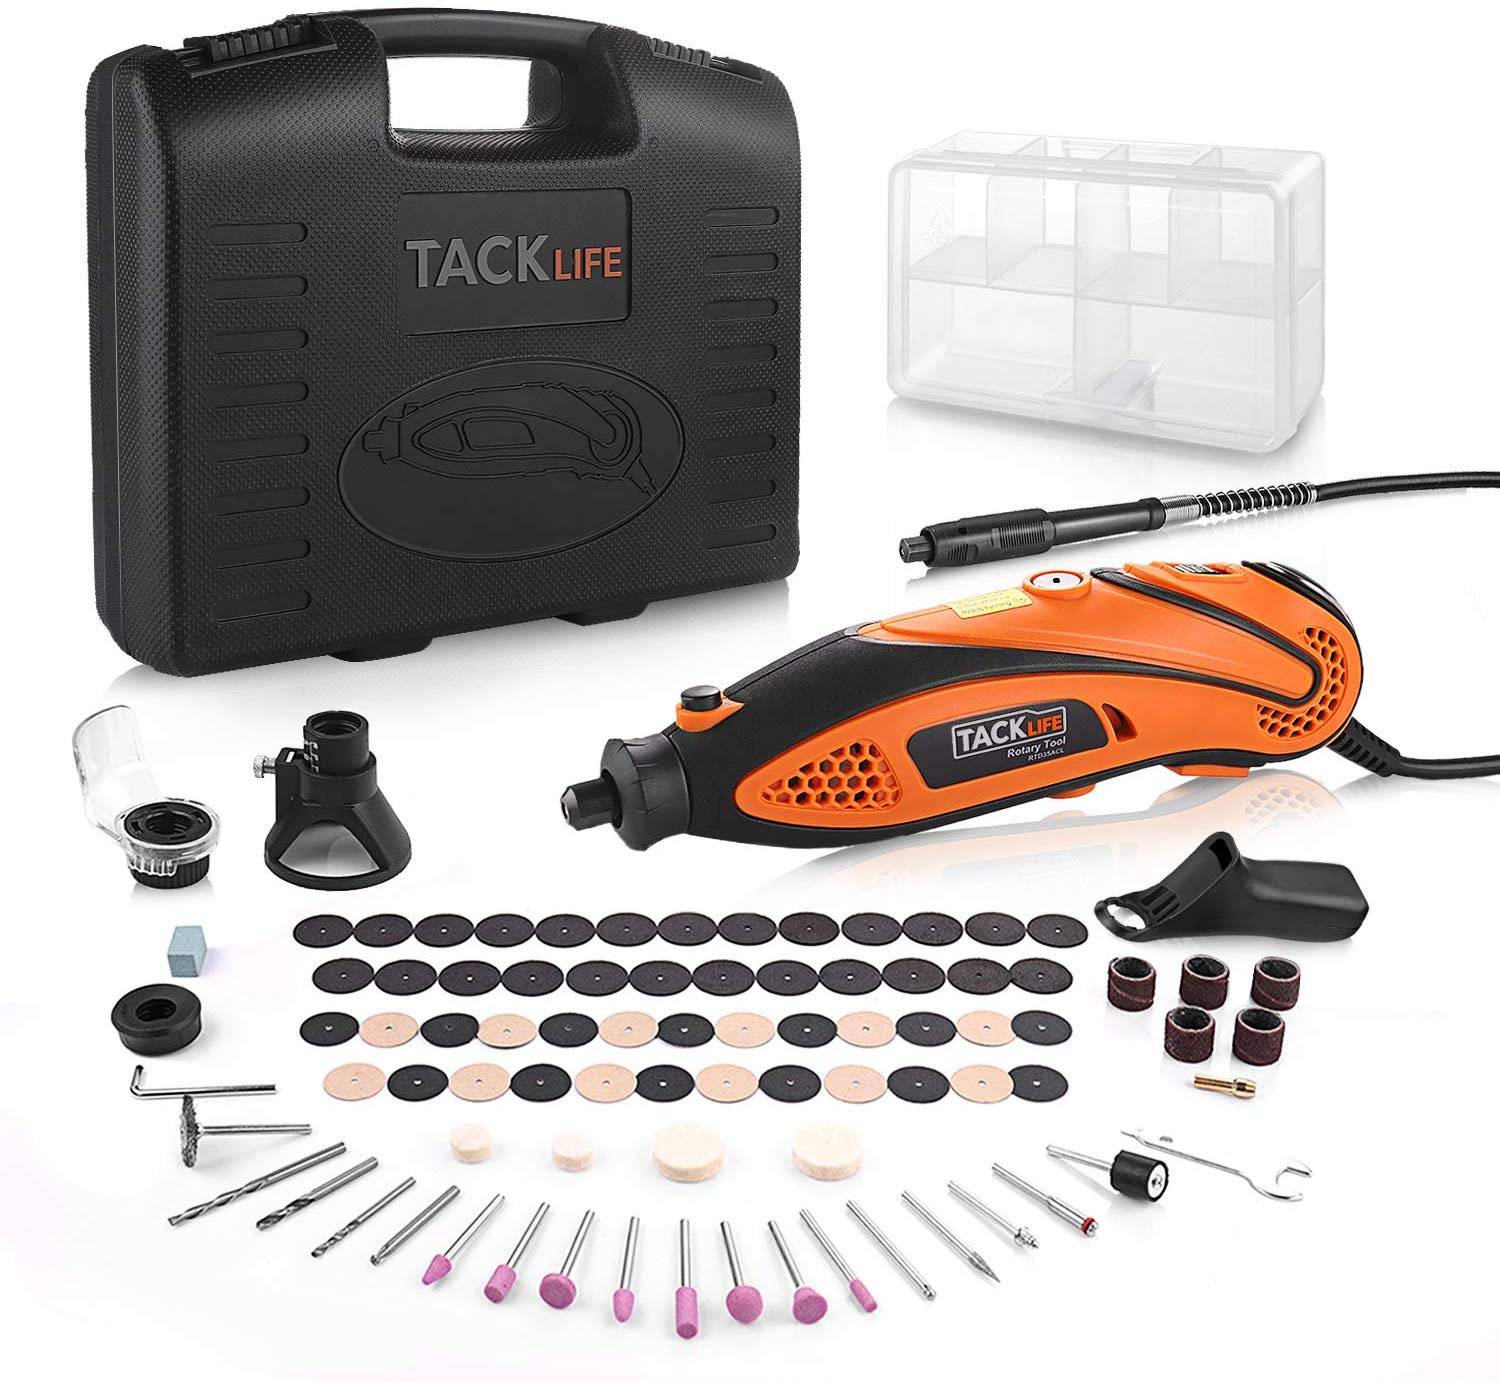 Rotary Tool Tacklife 135W Multi-Functional Tool with 80 Accessories Kit and 4 Attachments